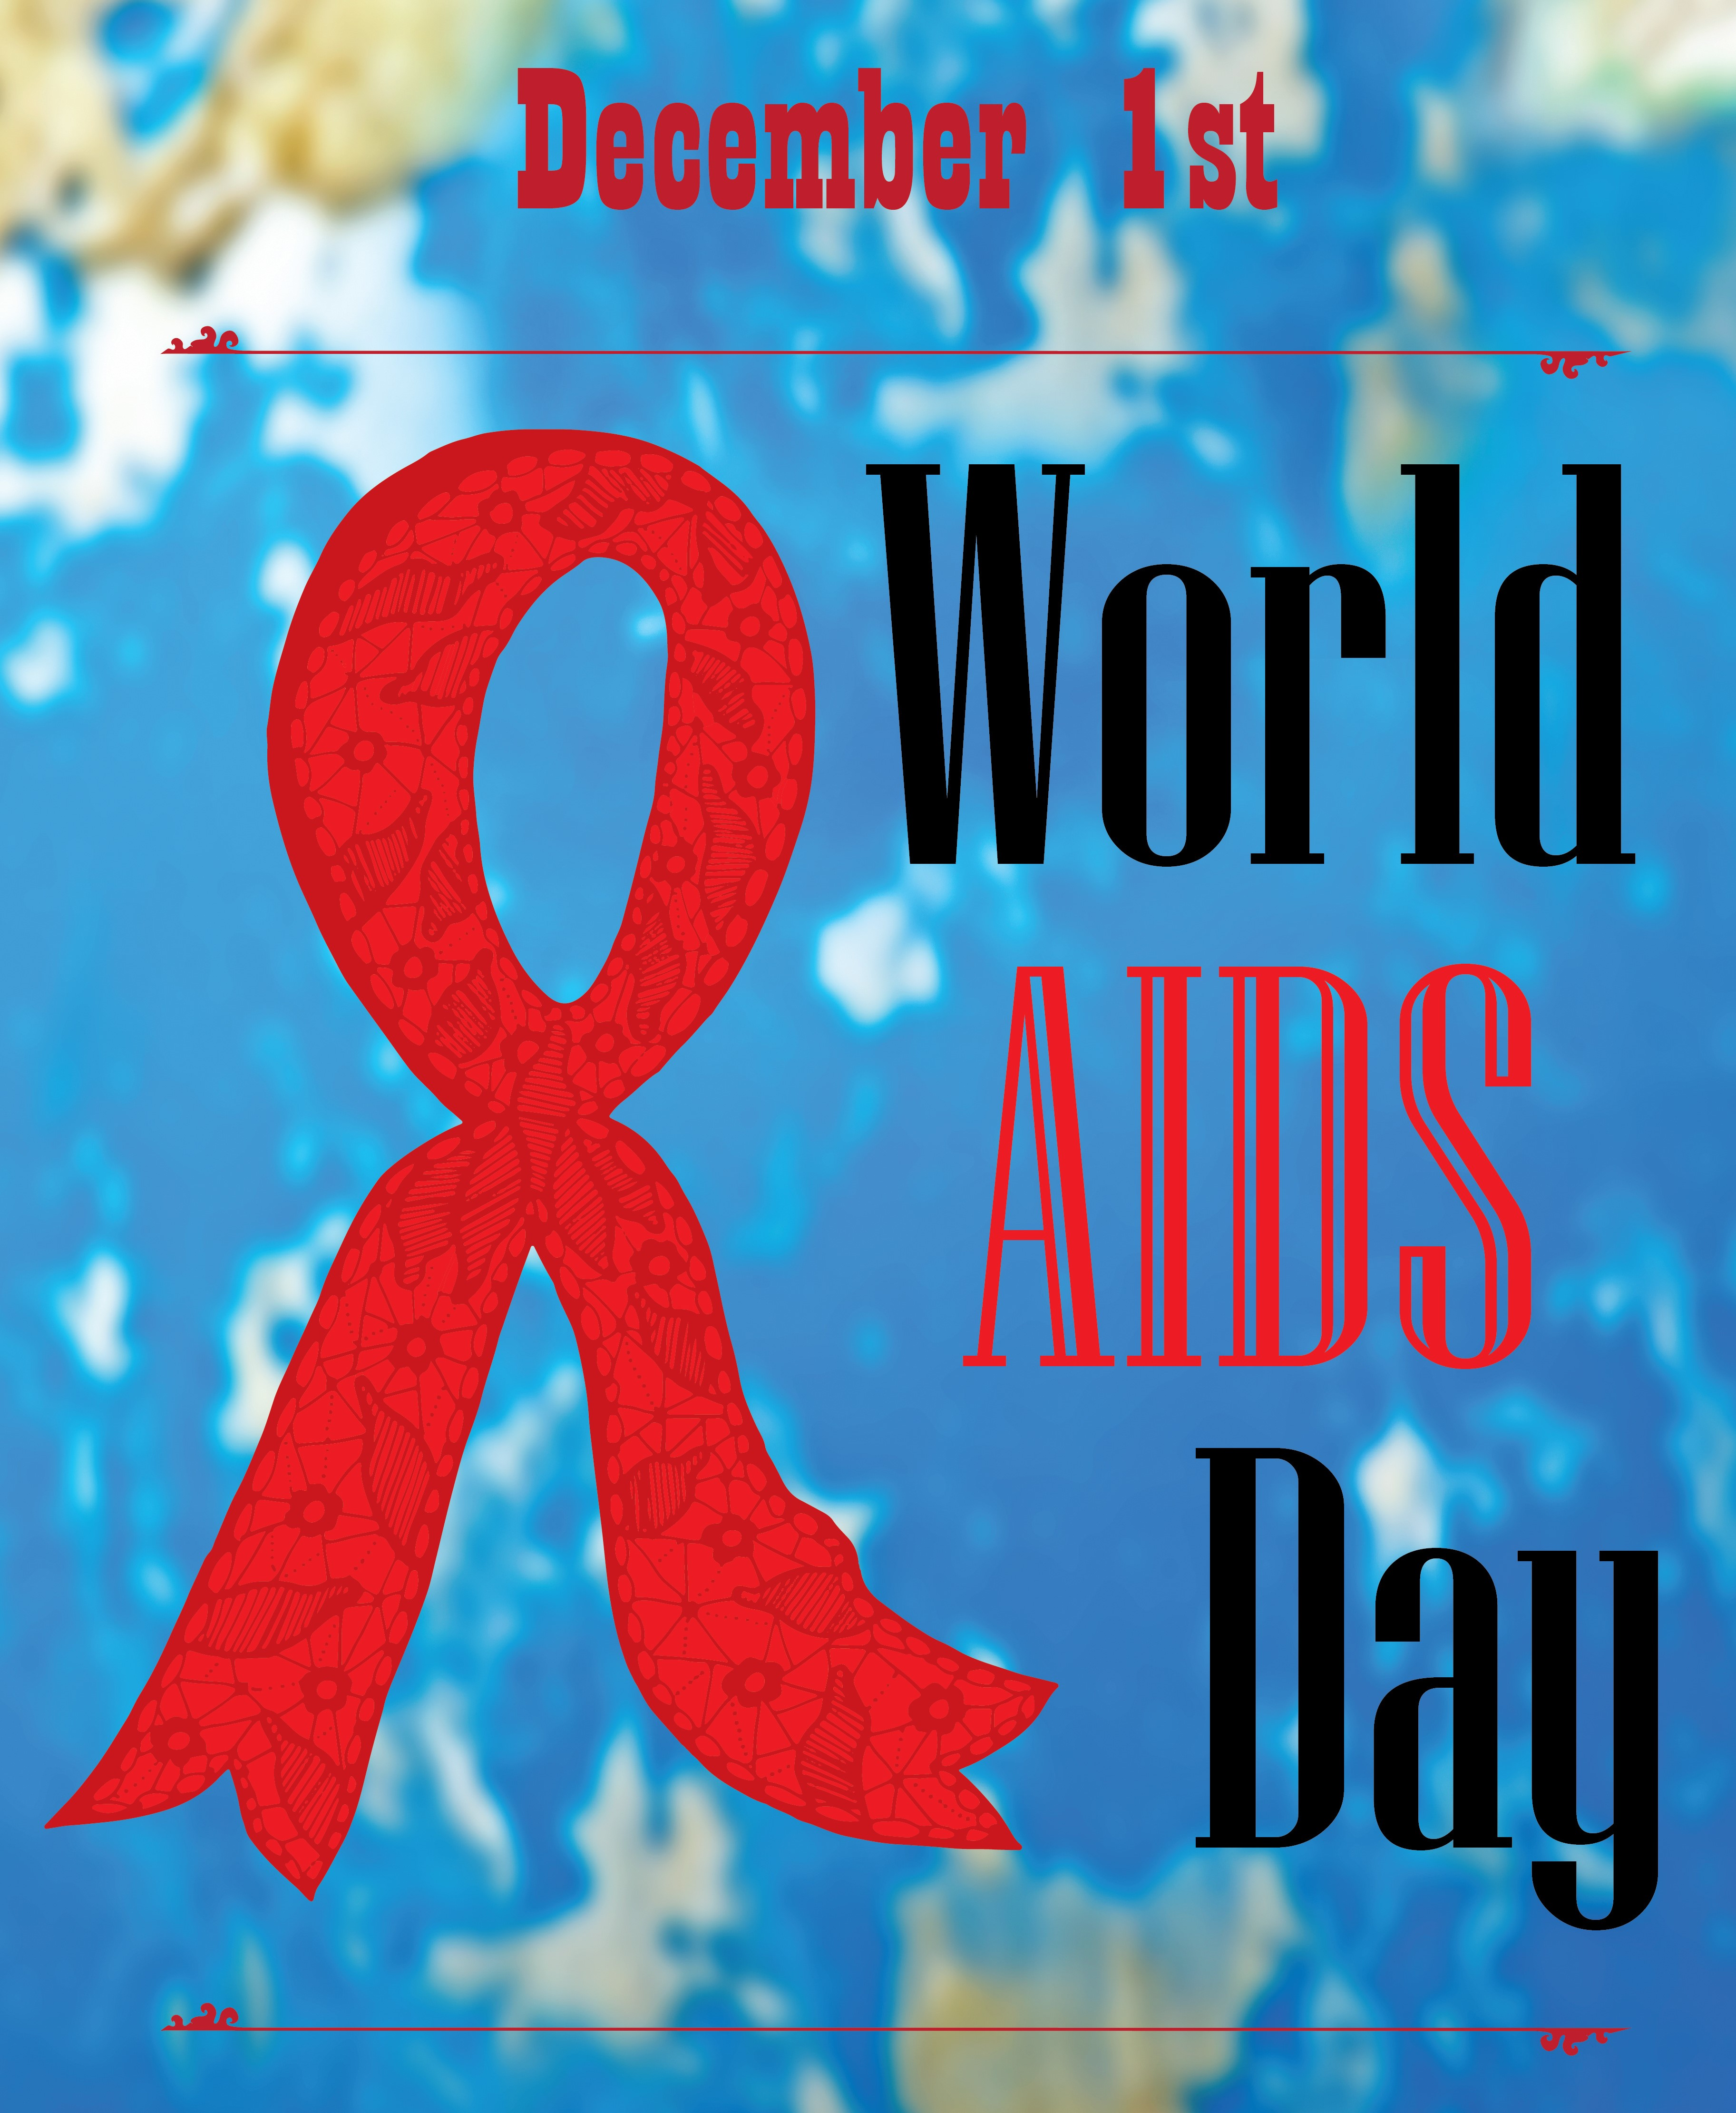 World aids day poster on blue background east central health district east central health district 1916 north leg rd augusta ga 30909 706 667 4326 1betcityfo Choice Image